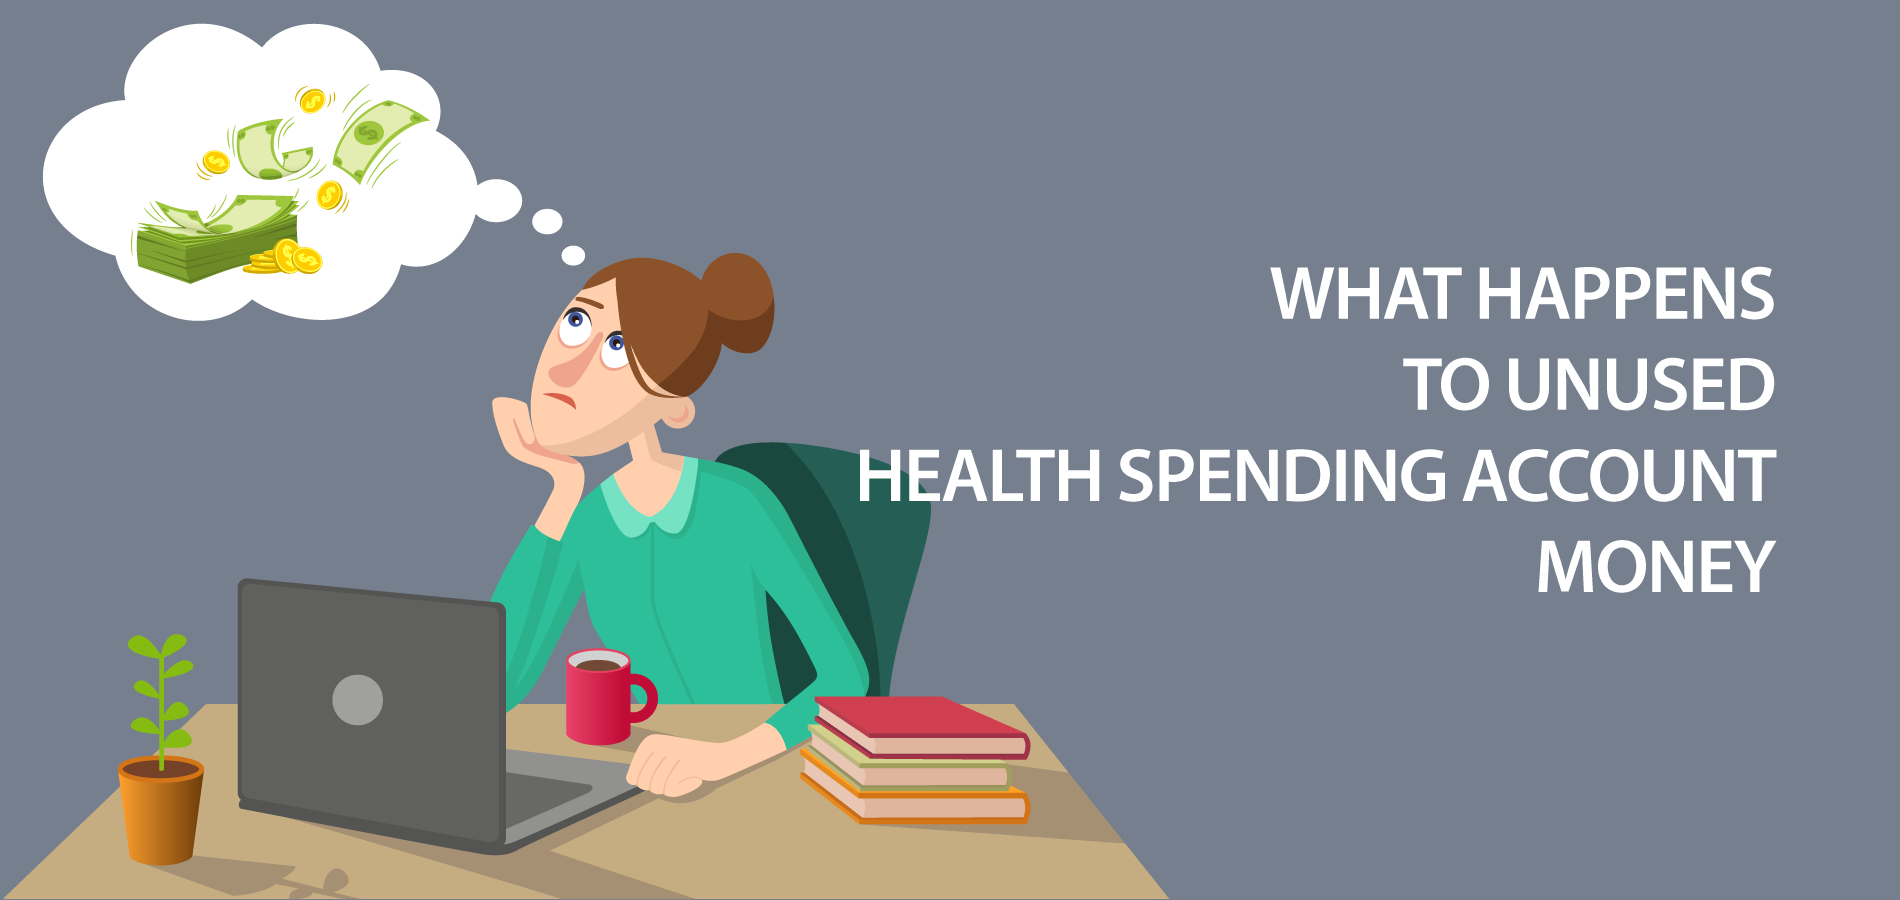 What happens to unused health spending account money